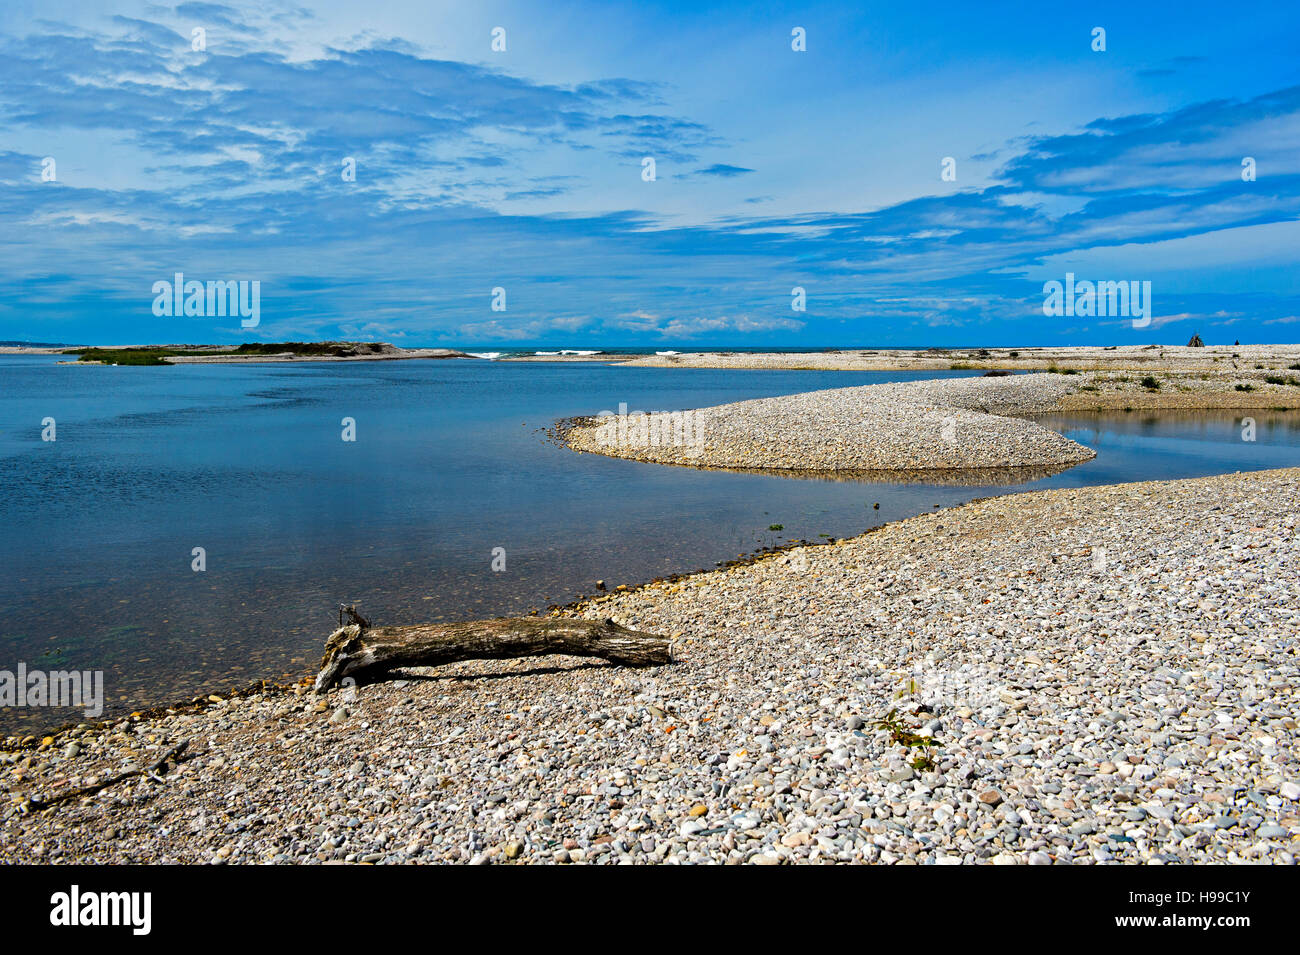 Inshore banks of shingle at the mouth of the River Spey, Spey Bay, Scotland, Great Britain - Stock Image